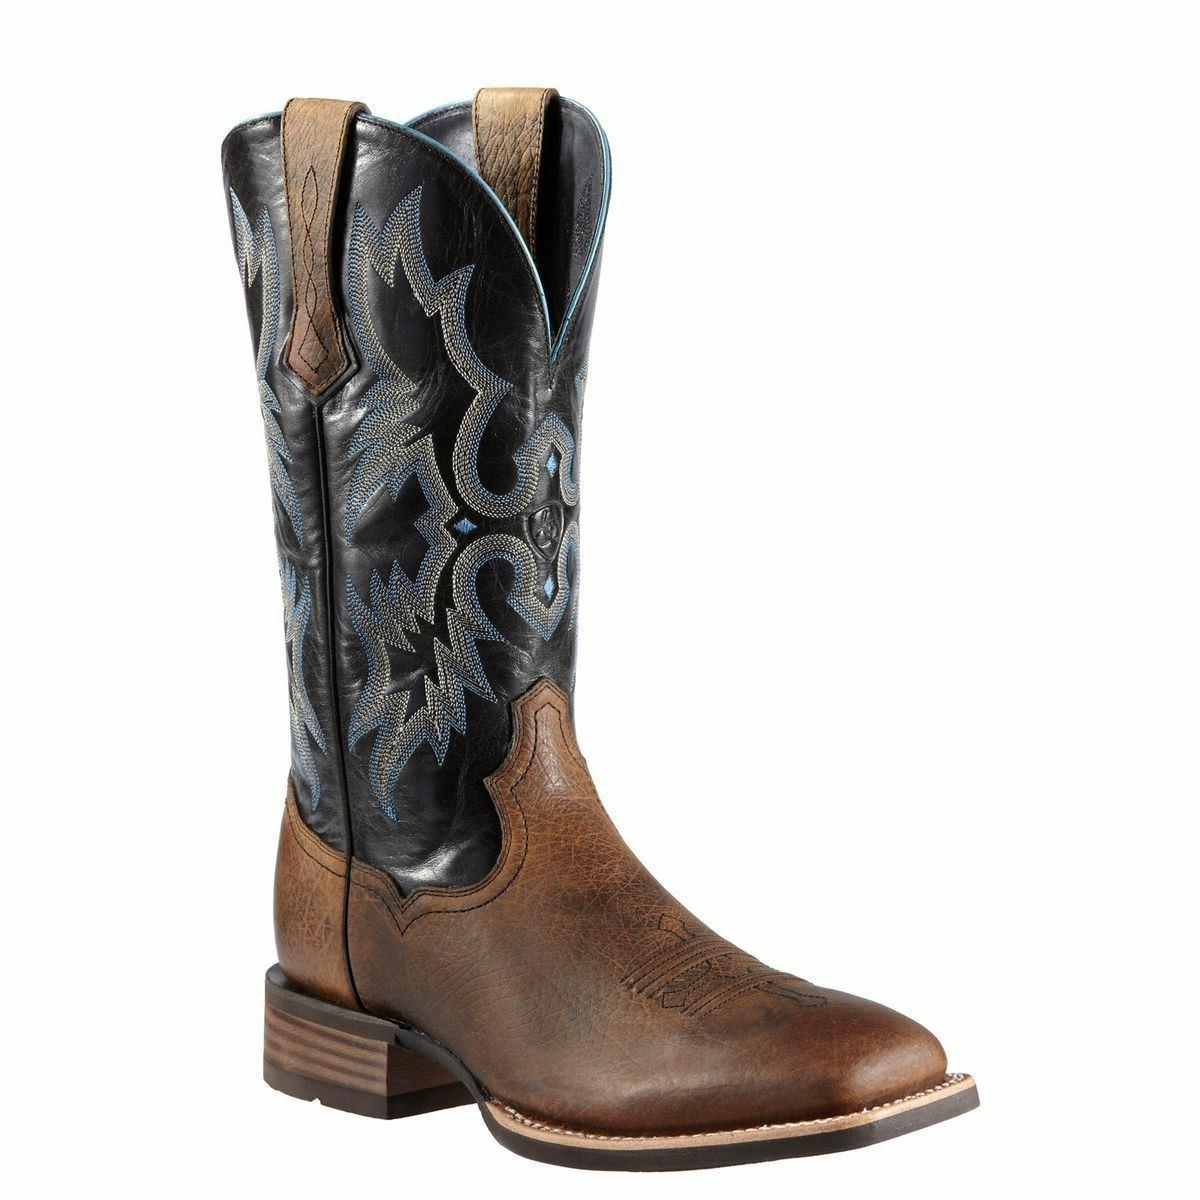 MEN'S ARIAT WIDE SQUARE TOE TOMBSTONE WESTERN BOOTS 10011785